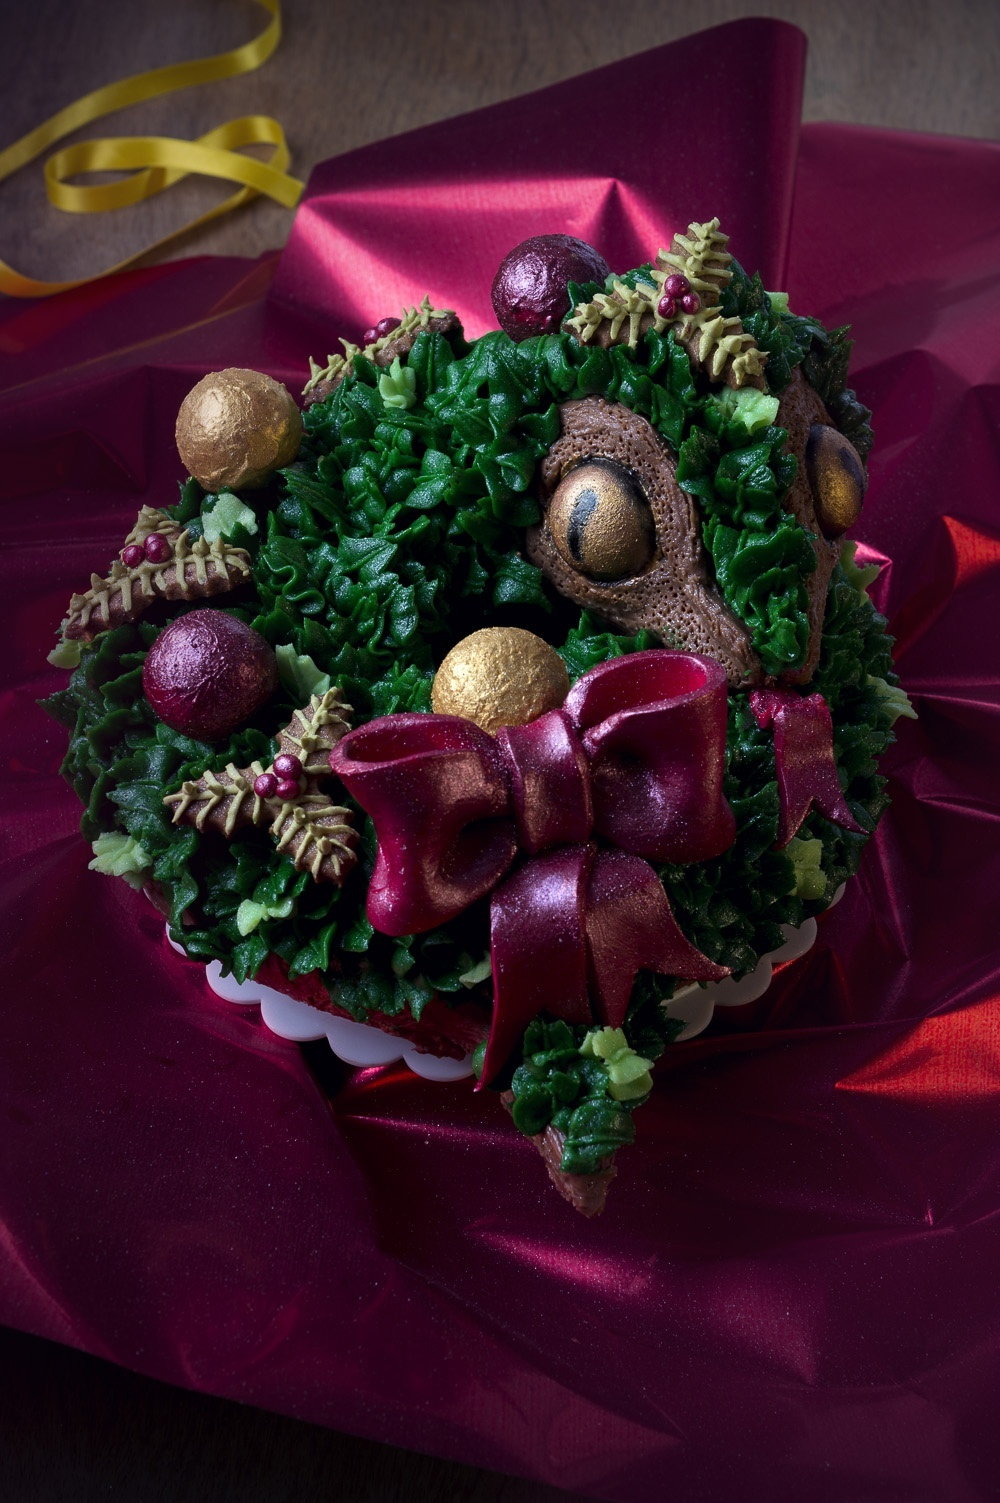 la-couronne-de-noel-christmas-wreath-qui-a-vole-les-tartes-studio-de-creation-2